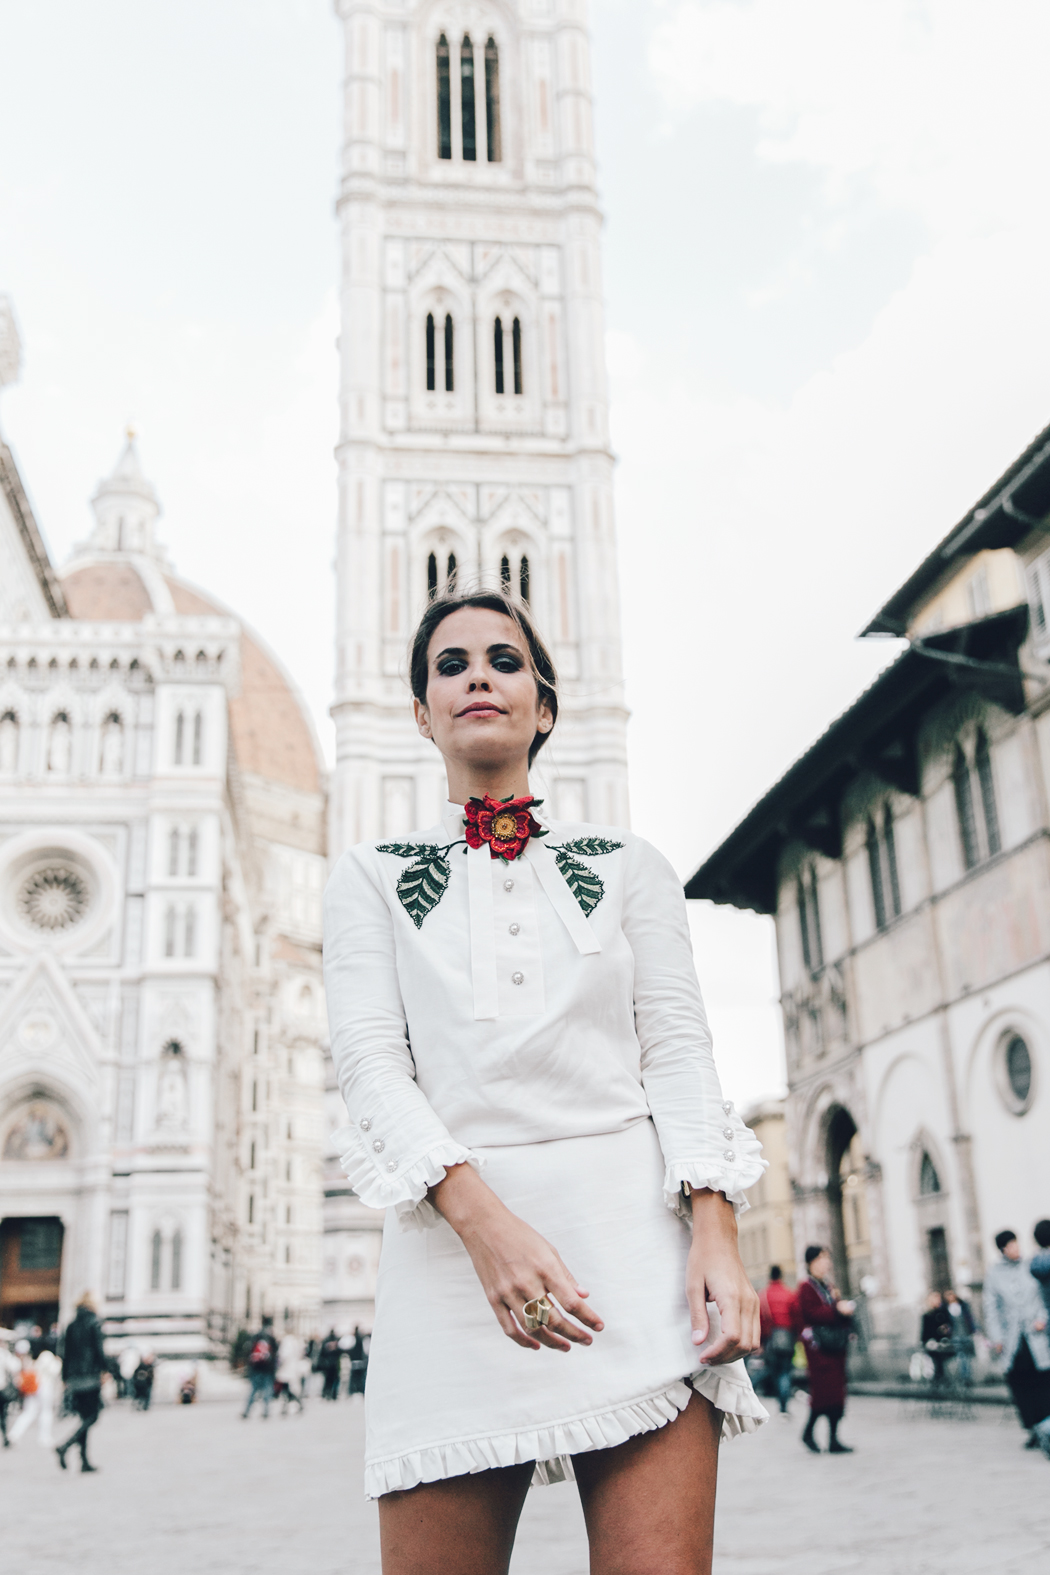 Firenze4Ever-Luisa_VIa_Roma-Gucci_White_Dress-Gucci_Gold_Sandals-Outfit-Florence-Street_Style-52